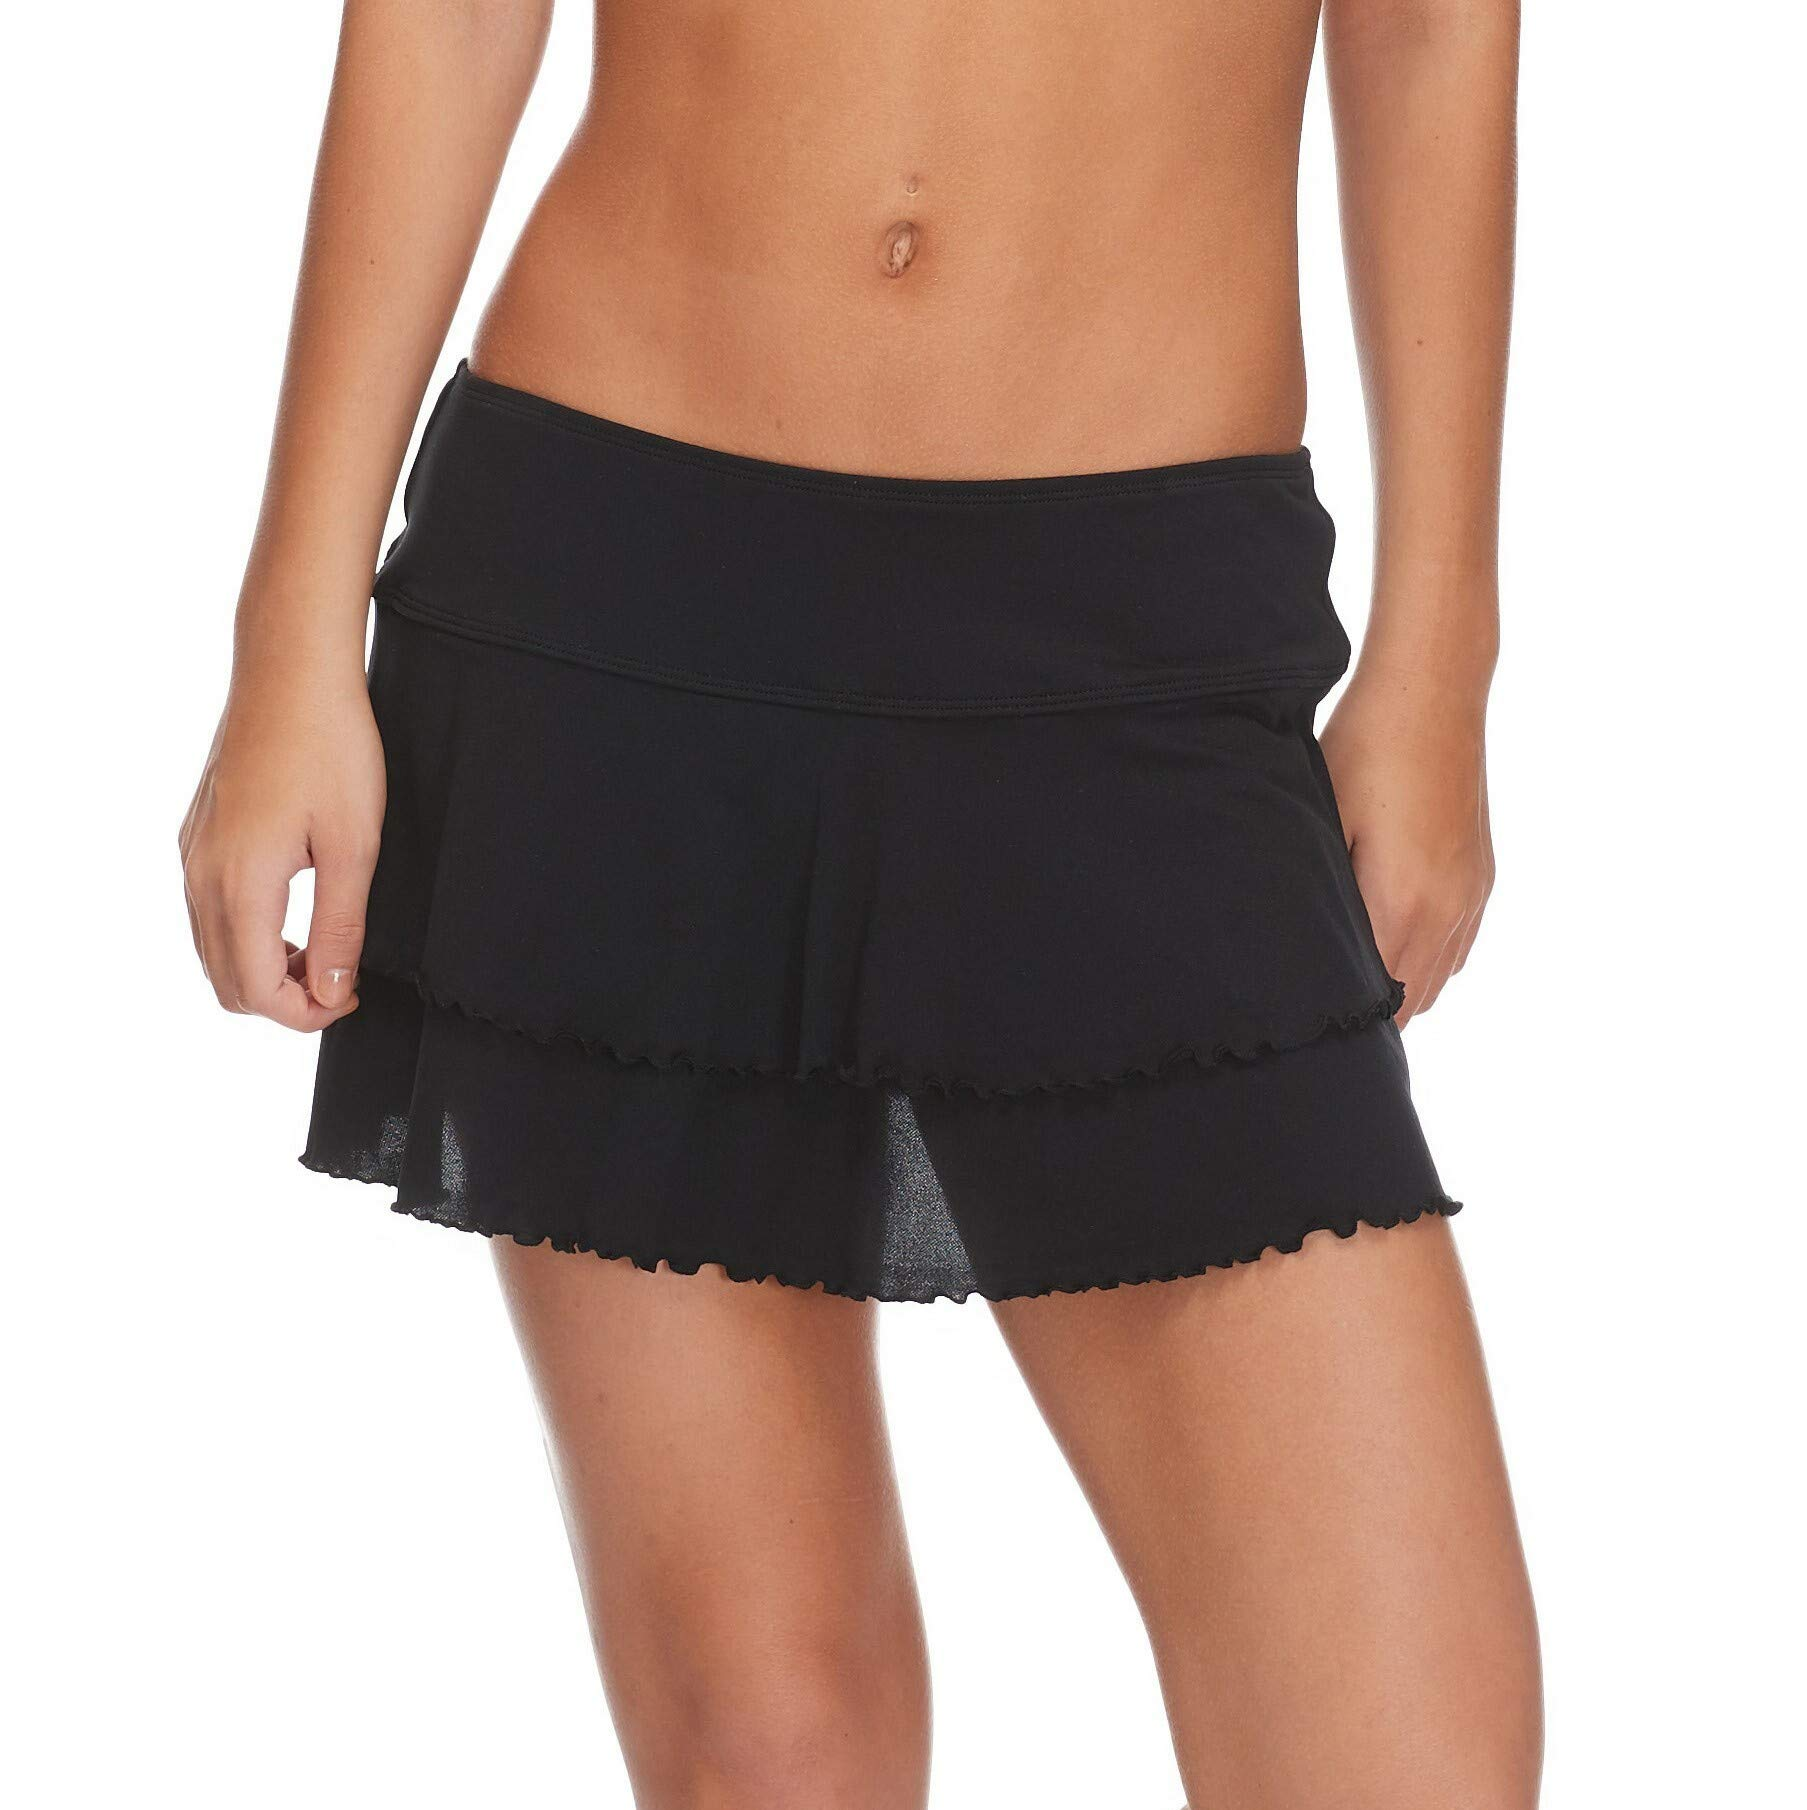 Body Glove Women's Smoothies Lambada Solid Mesh Cover Up Skirt Swimsuit, Black, X-Large